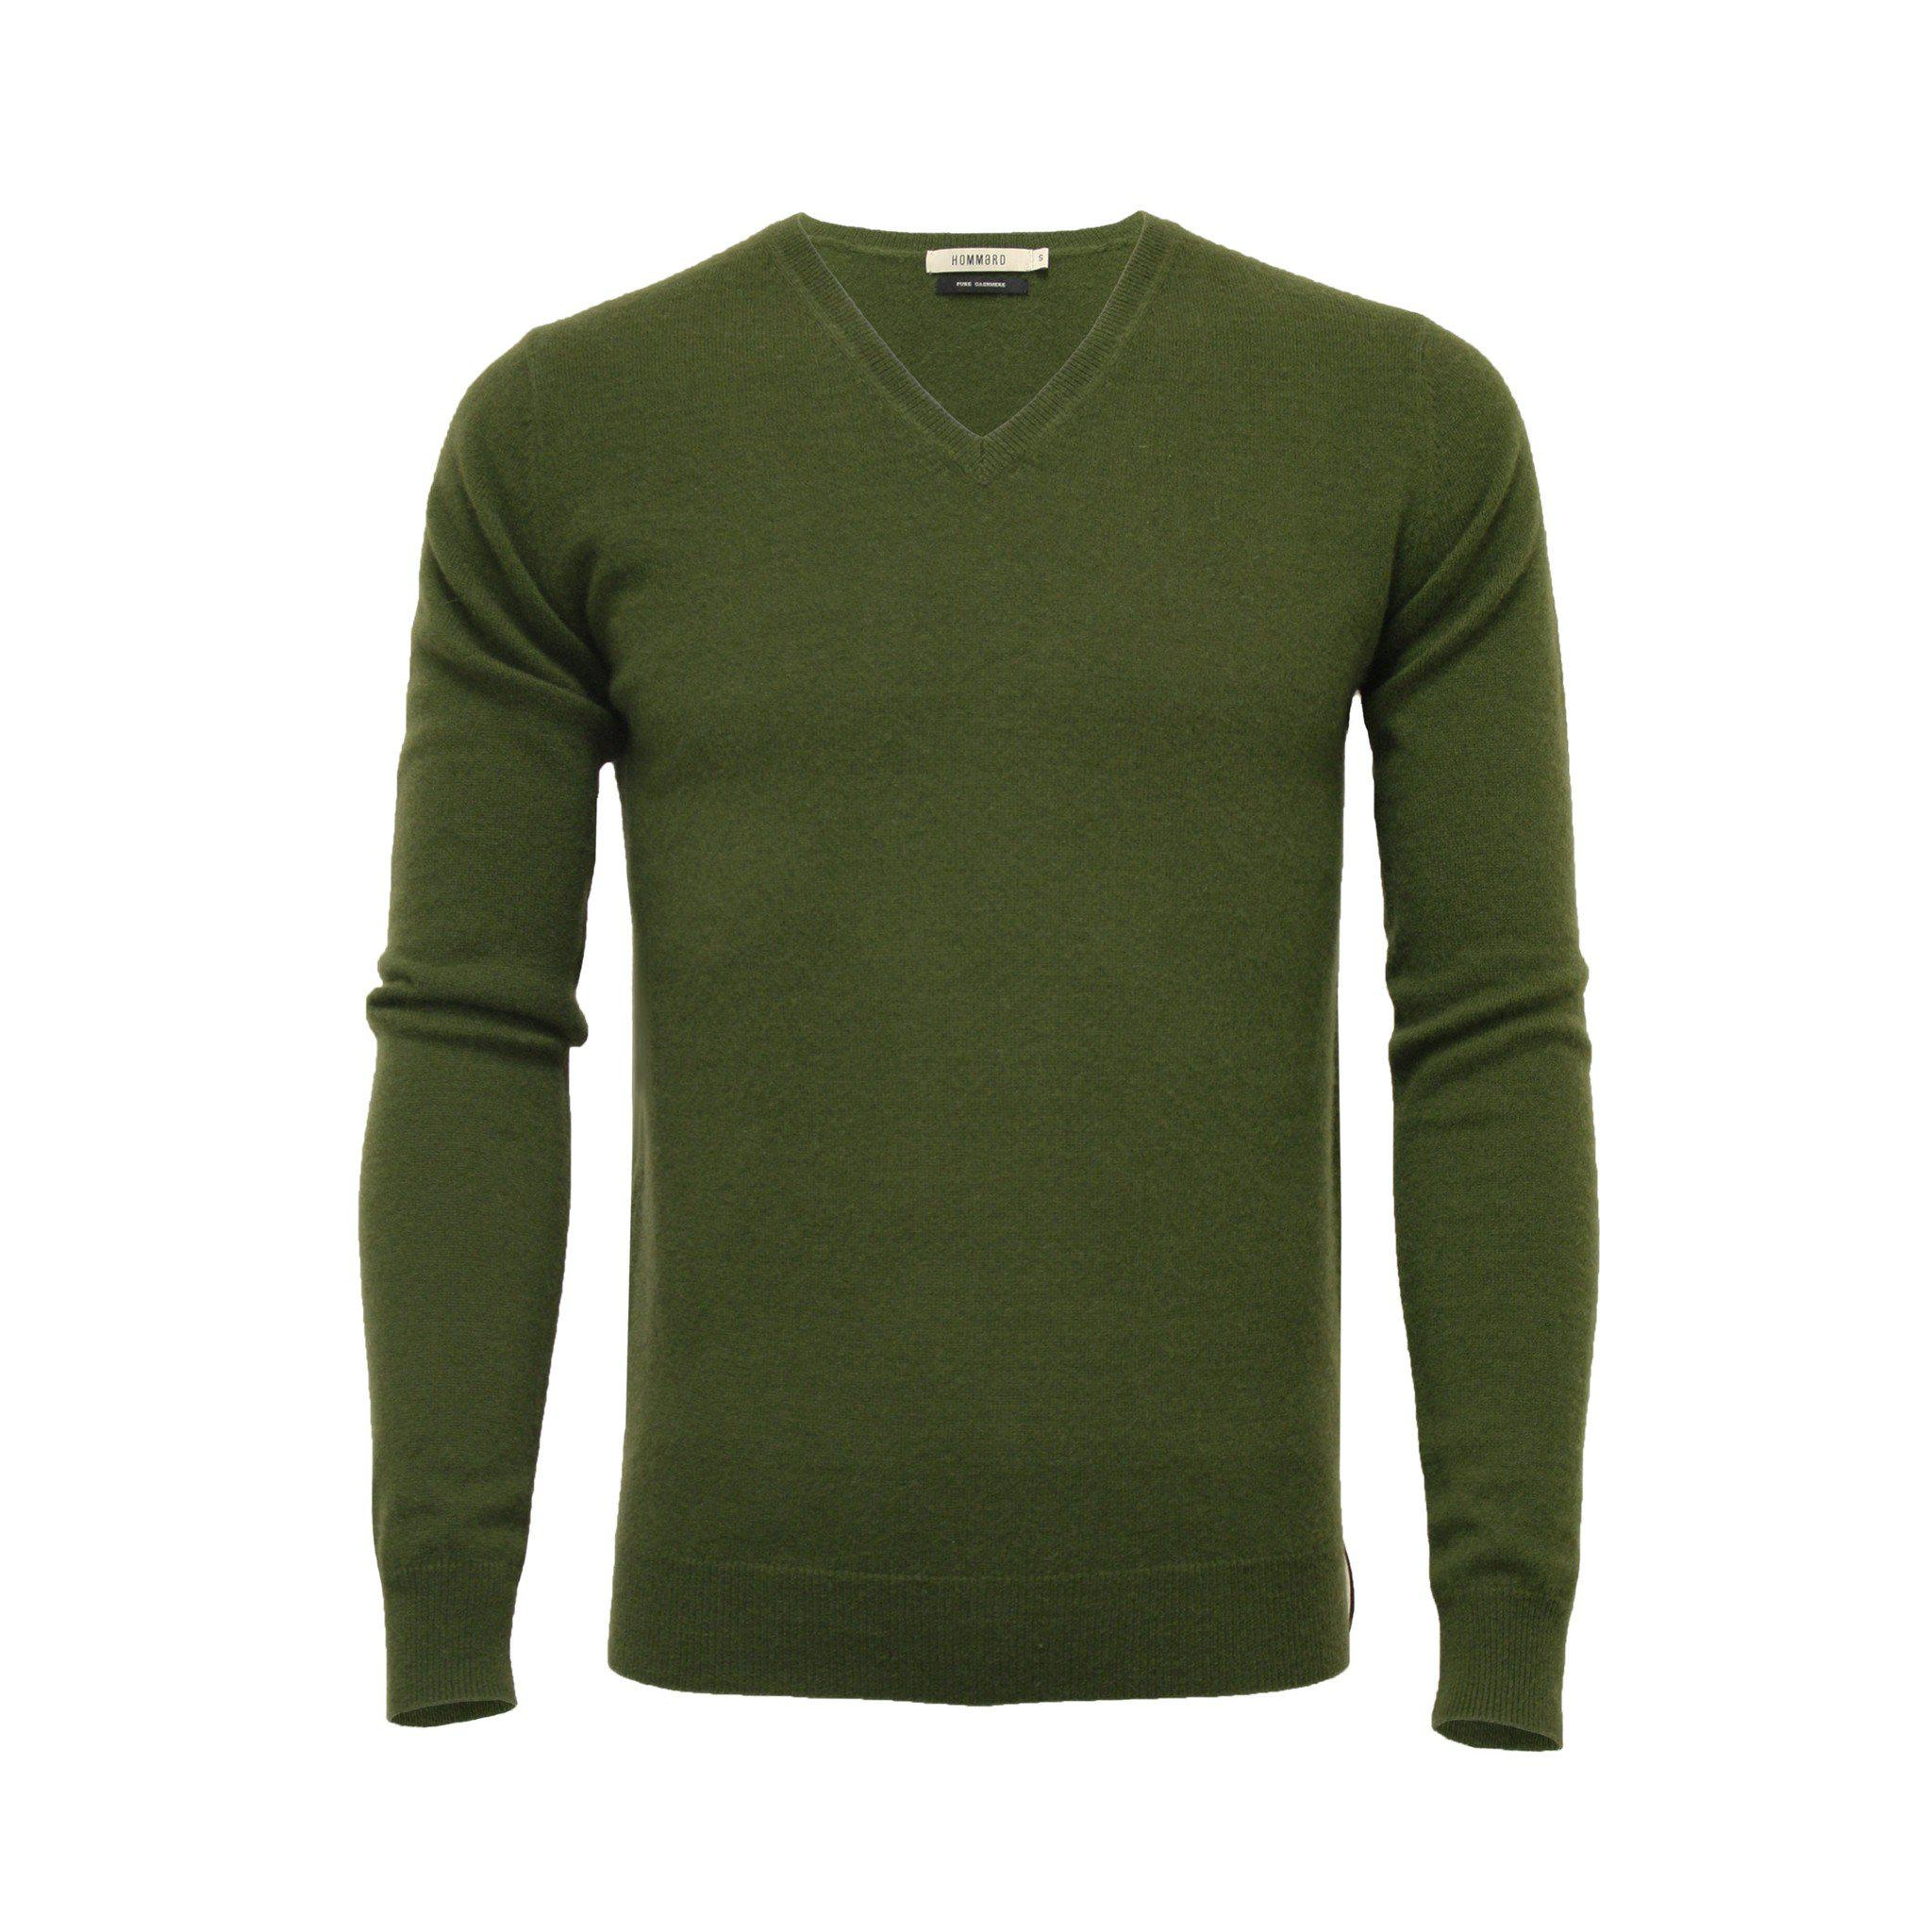 Cashmere V Neck Sweater Hunting Green